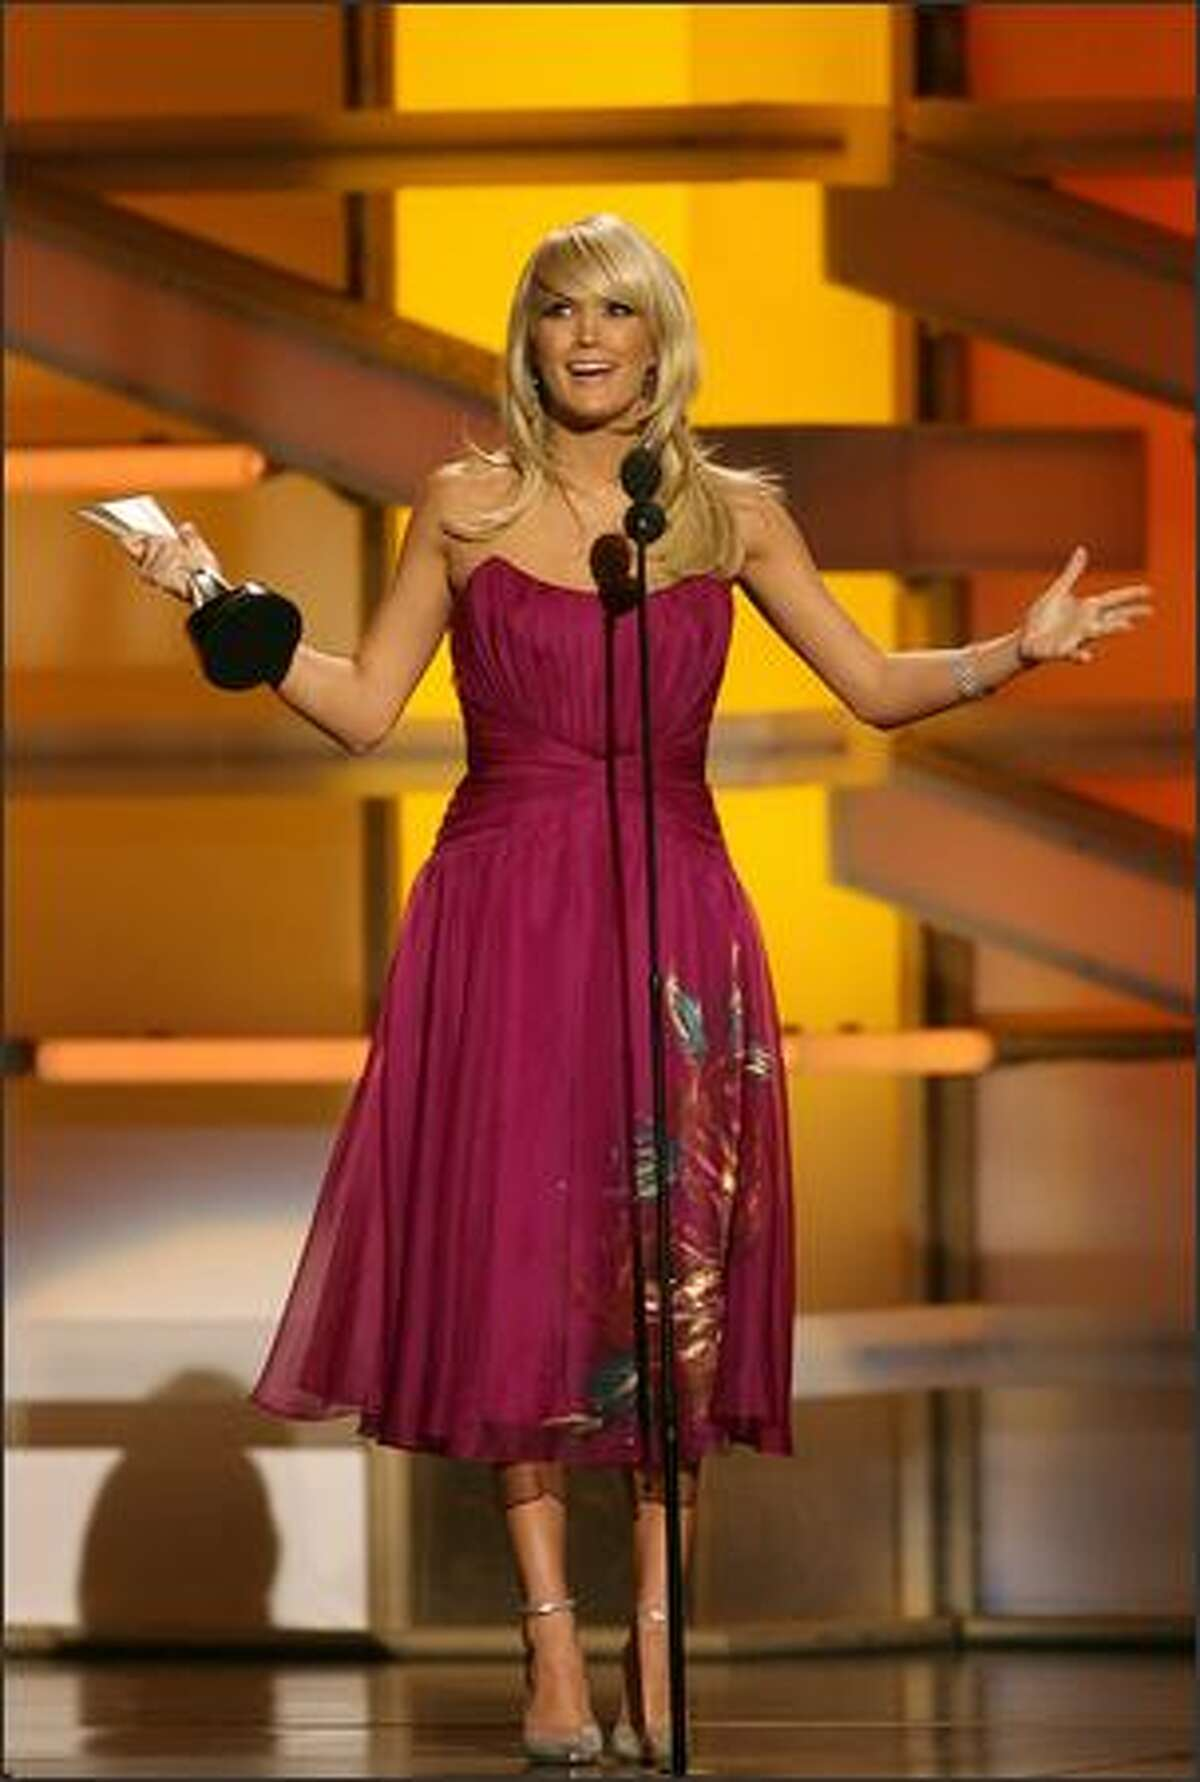 Singer Carrie Underwood accepts the award for Top Female Vocalist onstage during the 43rd annual Academy of Country Music Awards.